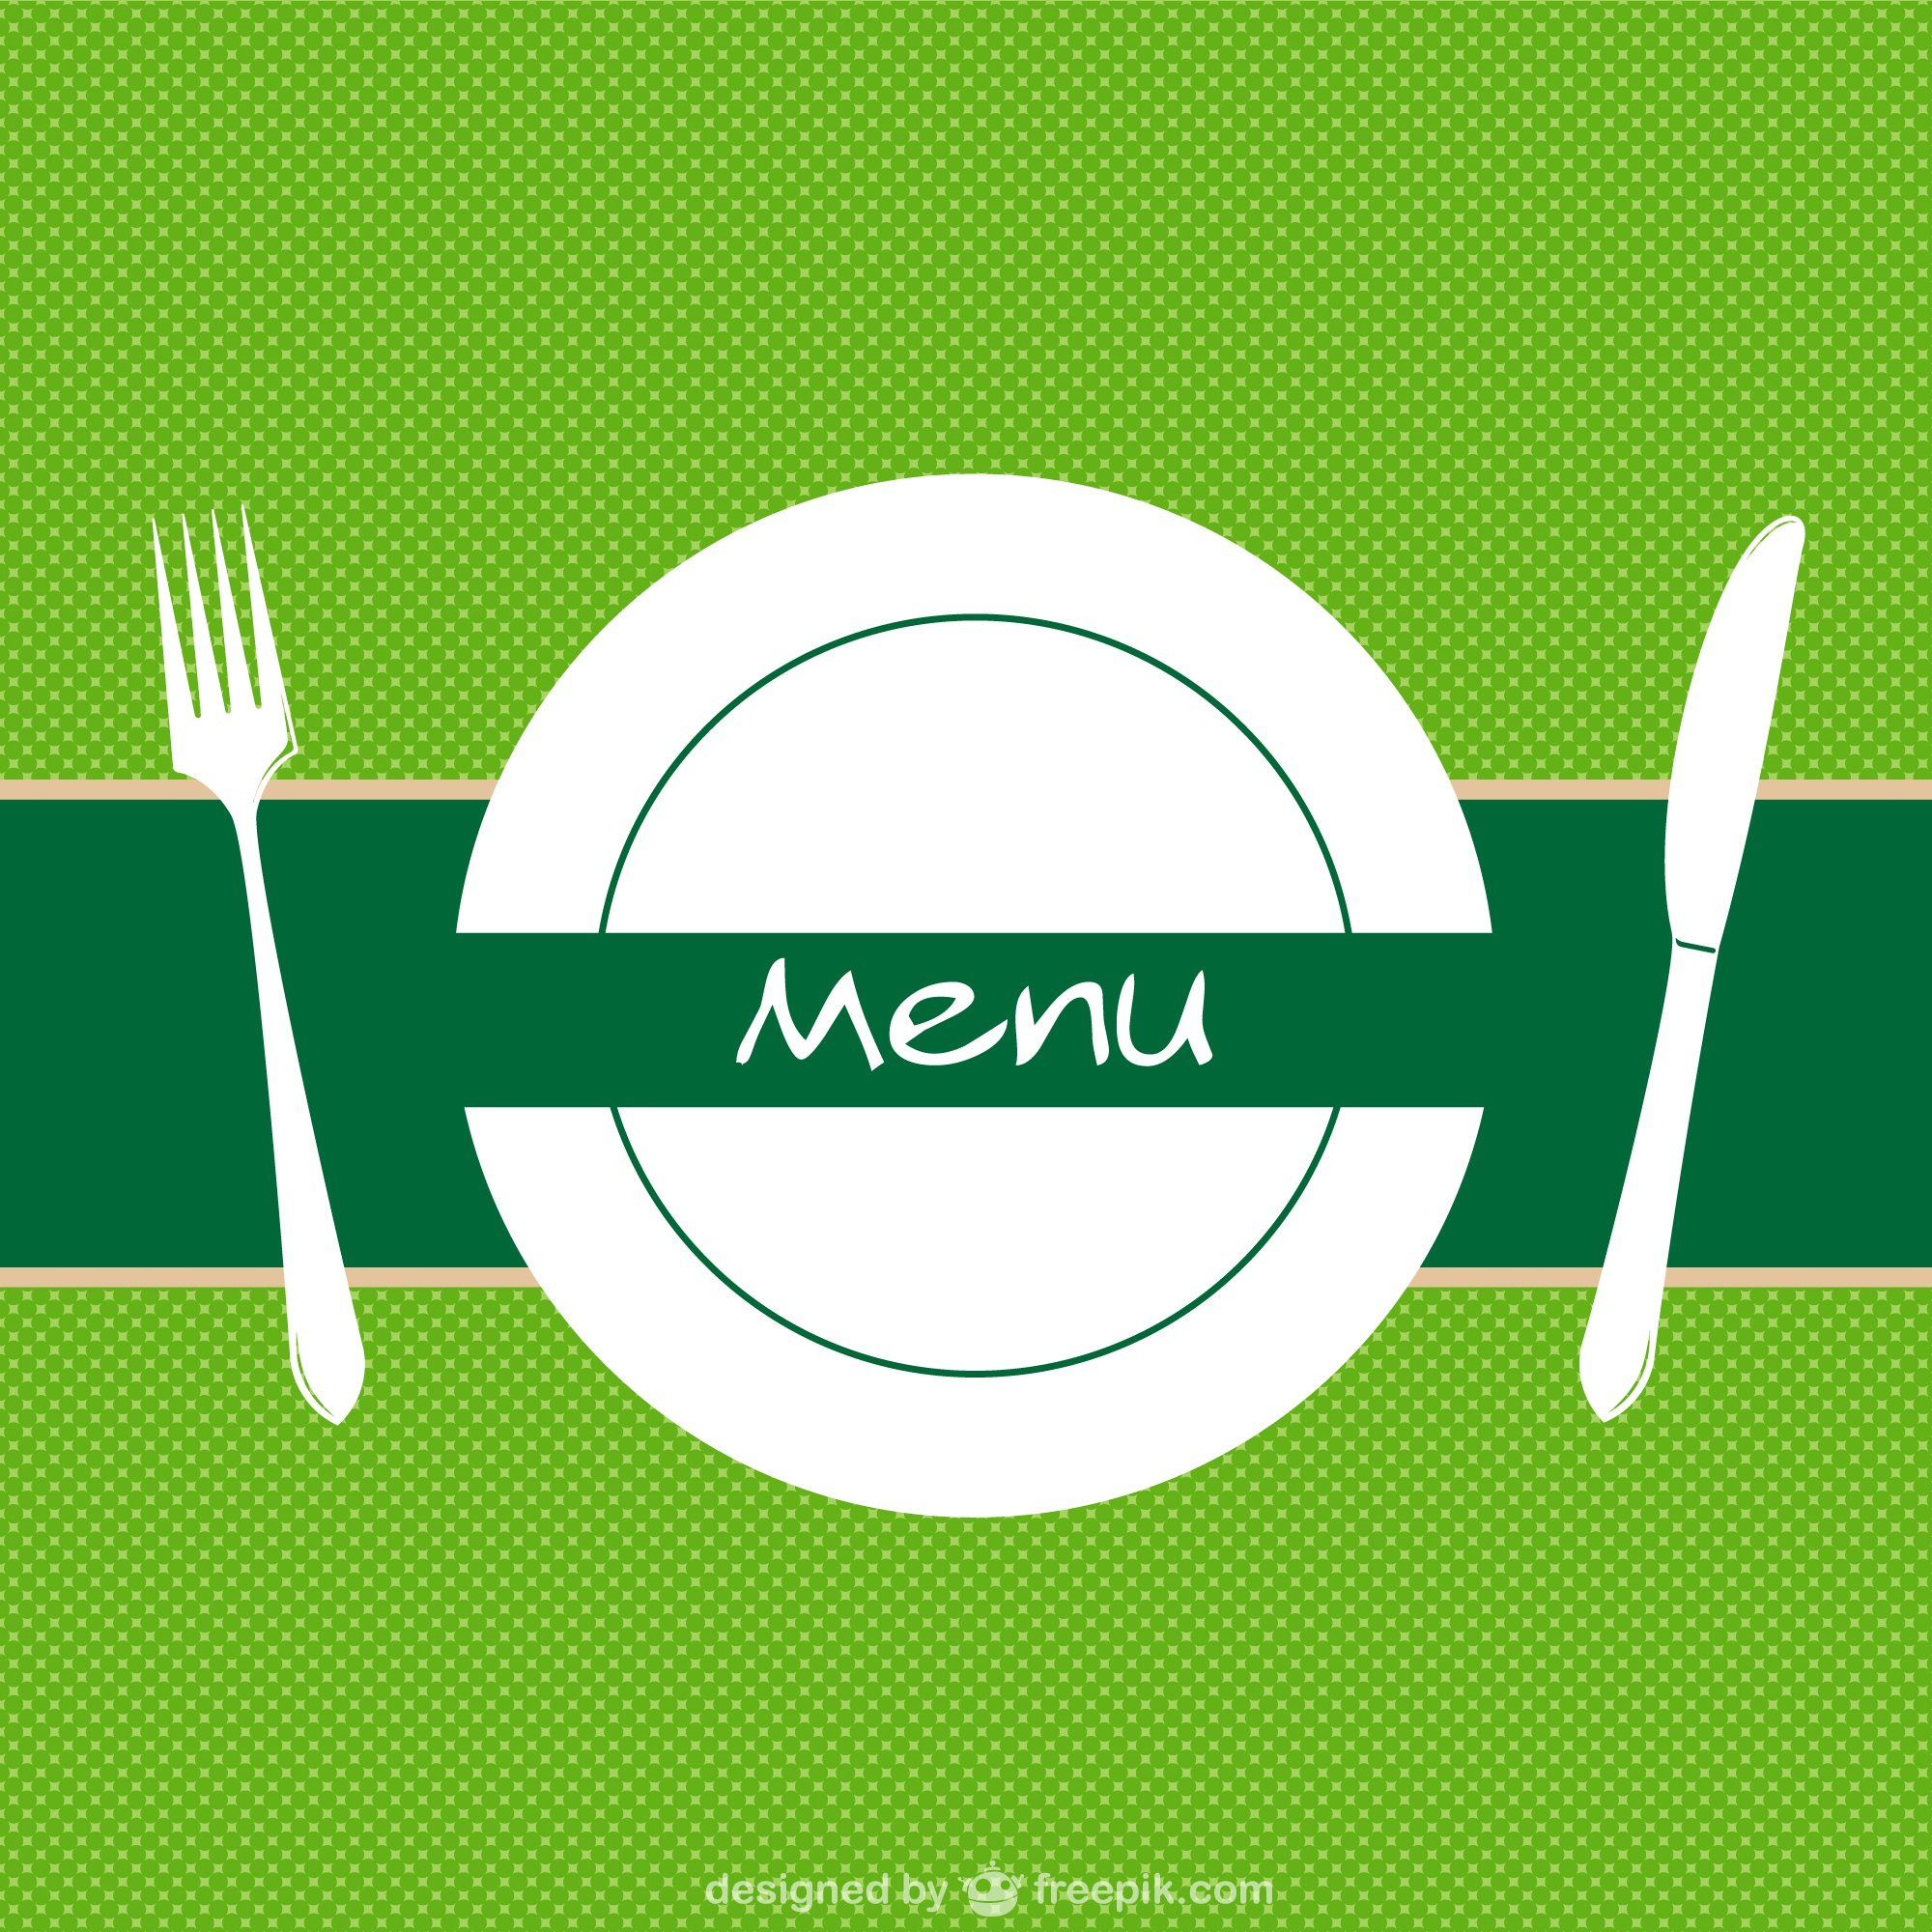 Restaurant menu background vector